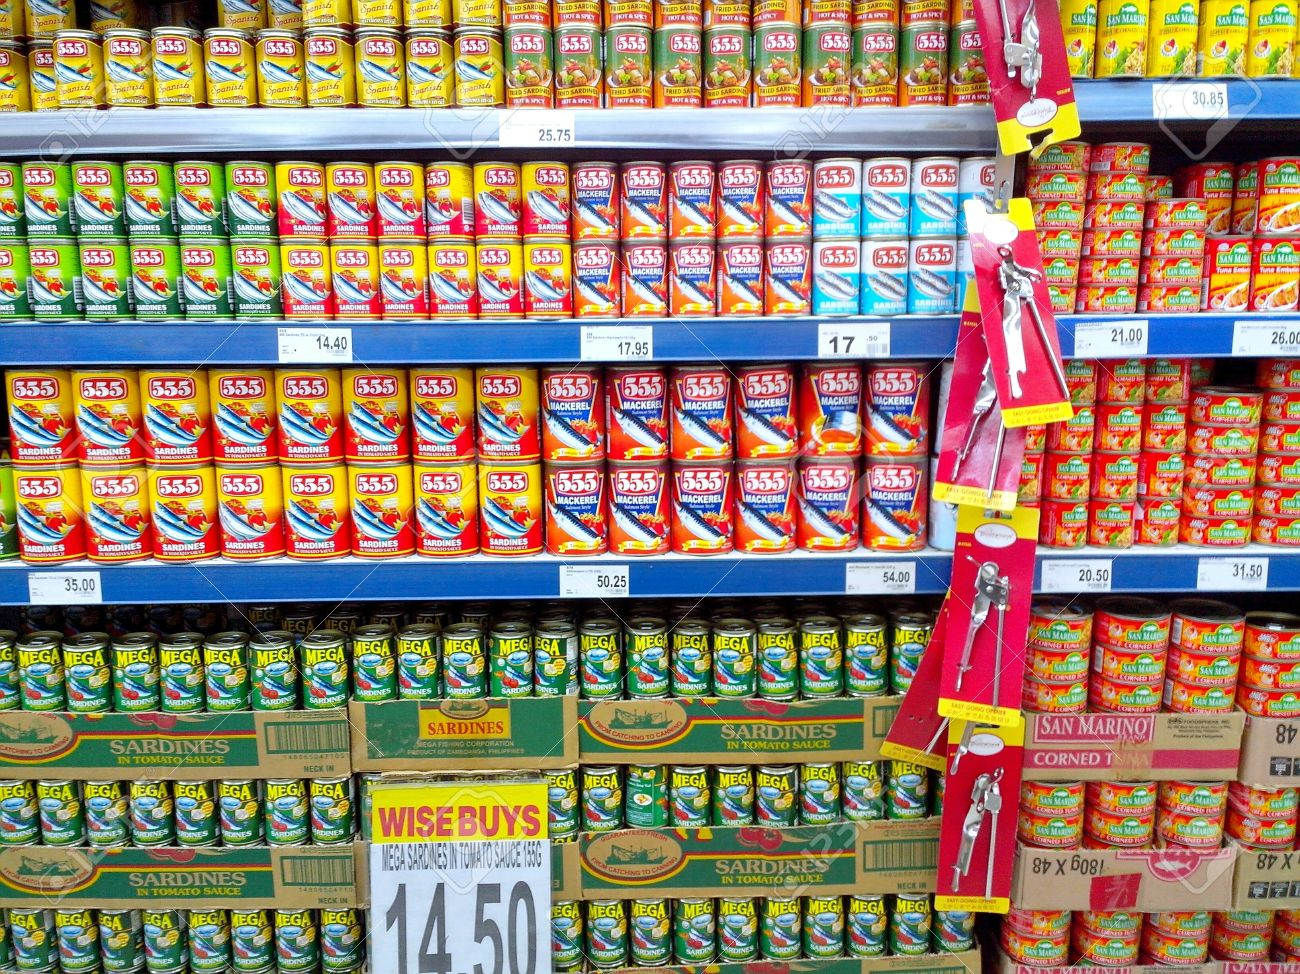 Breads affordable this season, but canned sardines will be a bit more pricey, DTI says